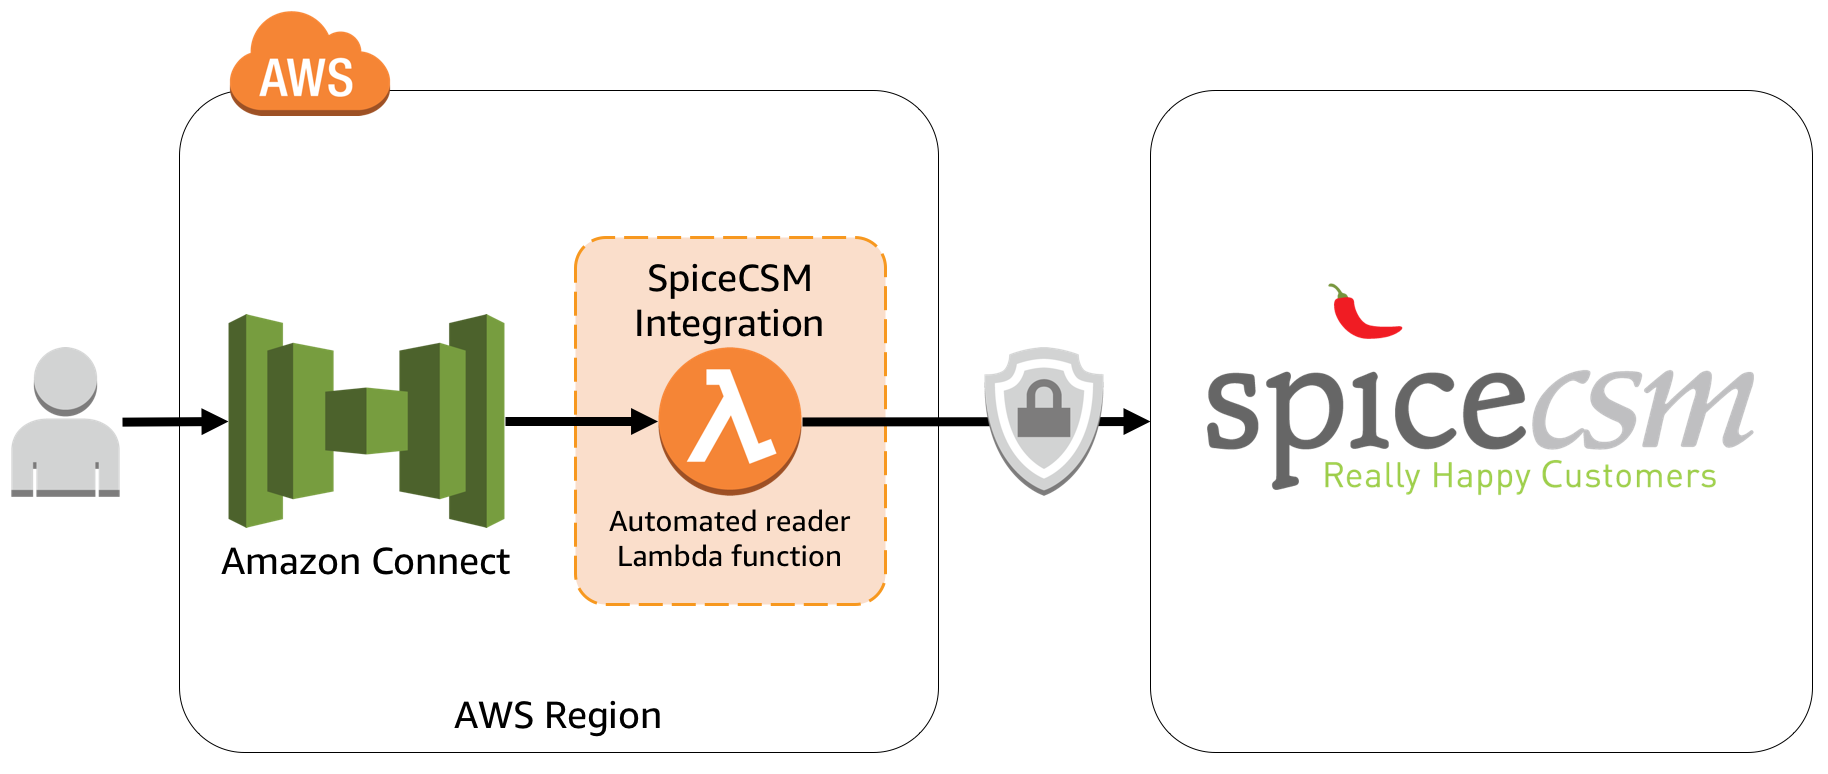 SpiceCSM - Amazon Connect integration